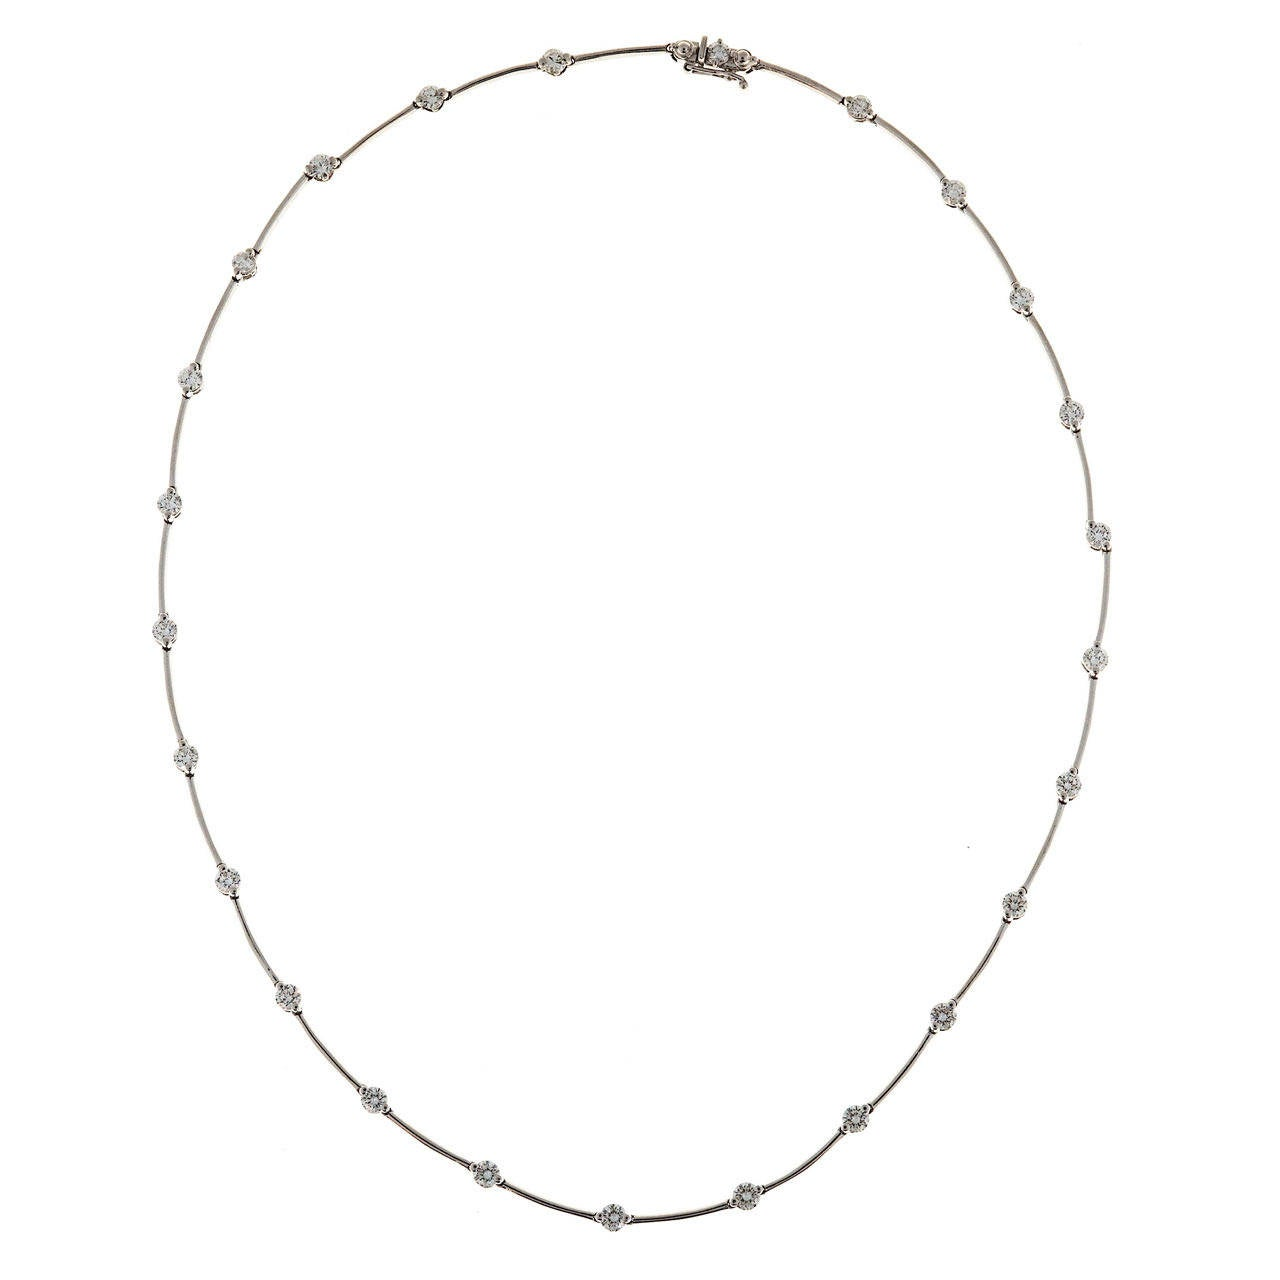 Diamond Platinum Bar And Hinged Necklace Chain